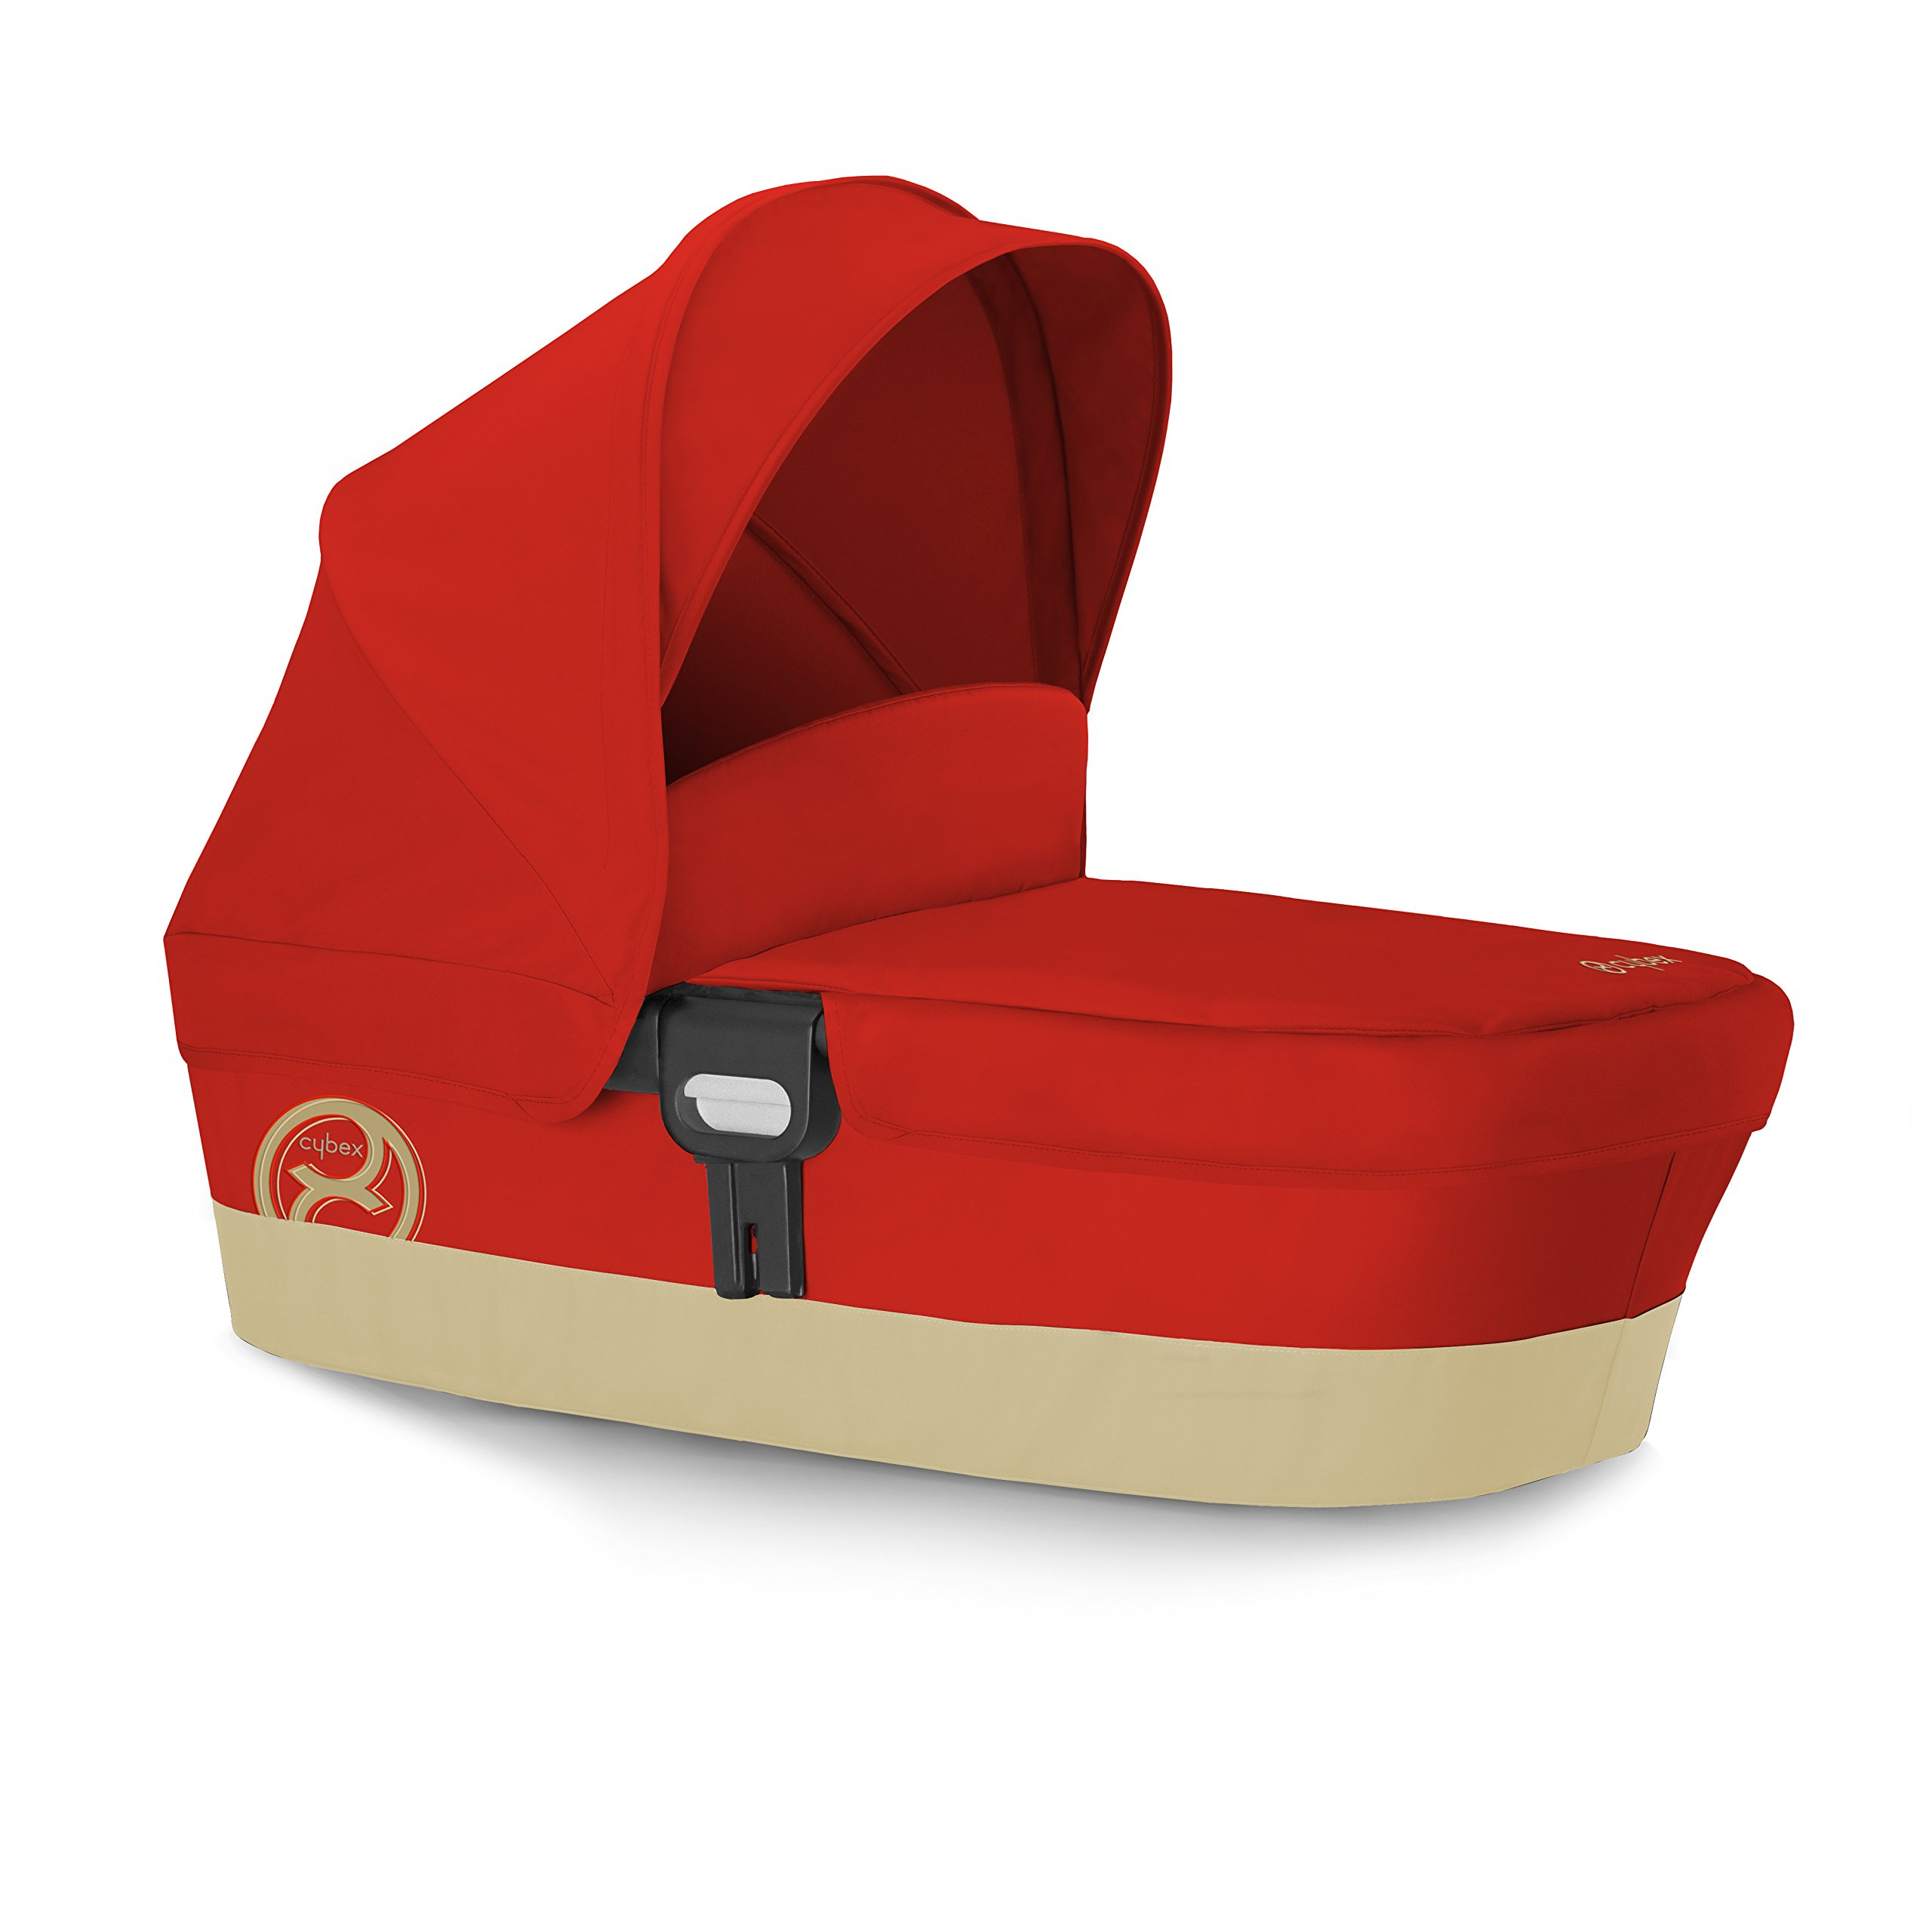 CYBEX Carry Cot M Stroller, Autumn Gold by Cybex (Image #1)